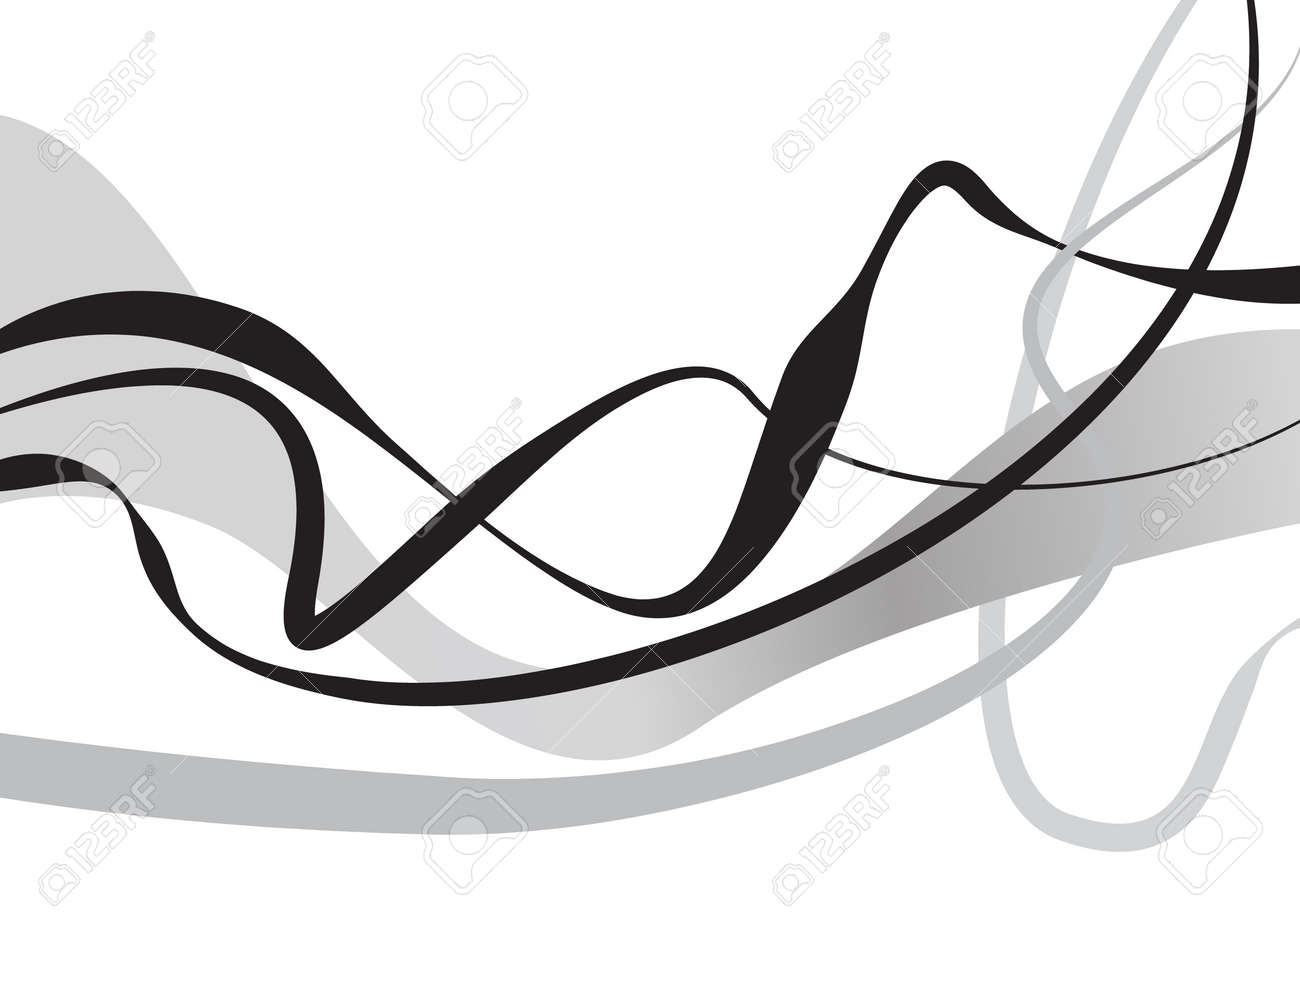 Curved Lines In Art : Abstract art vector background with curvy curved lines